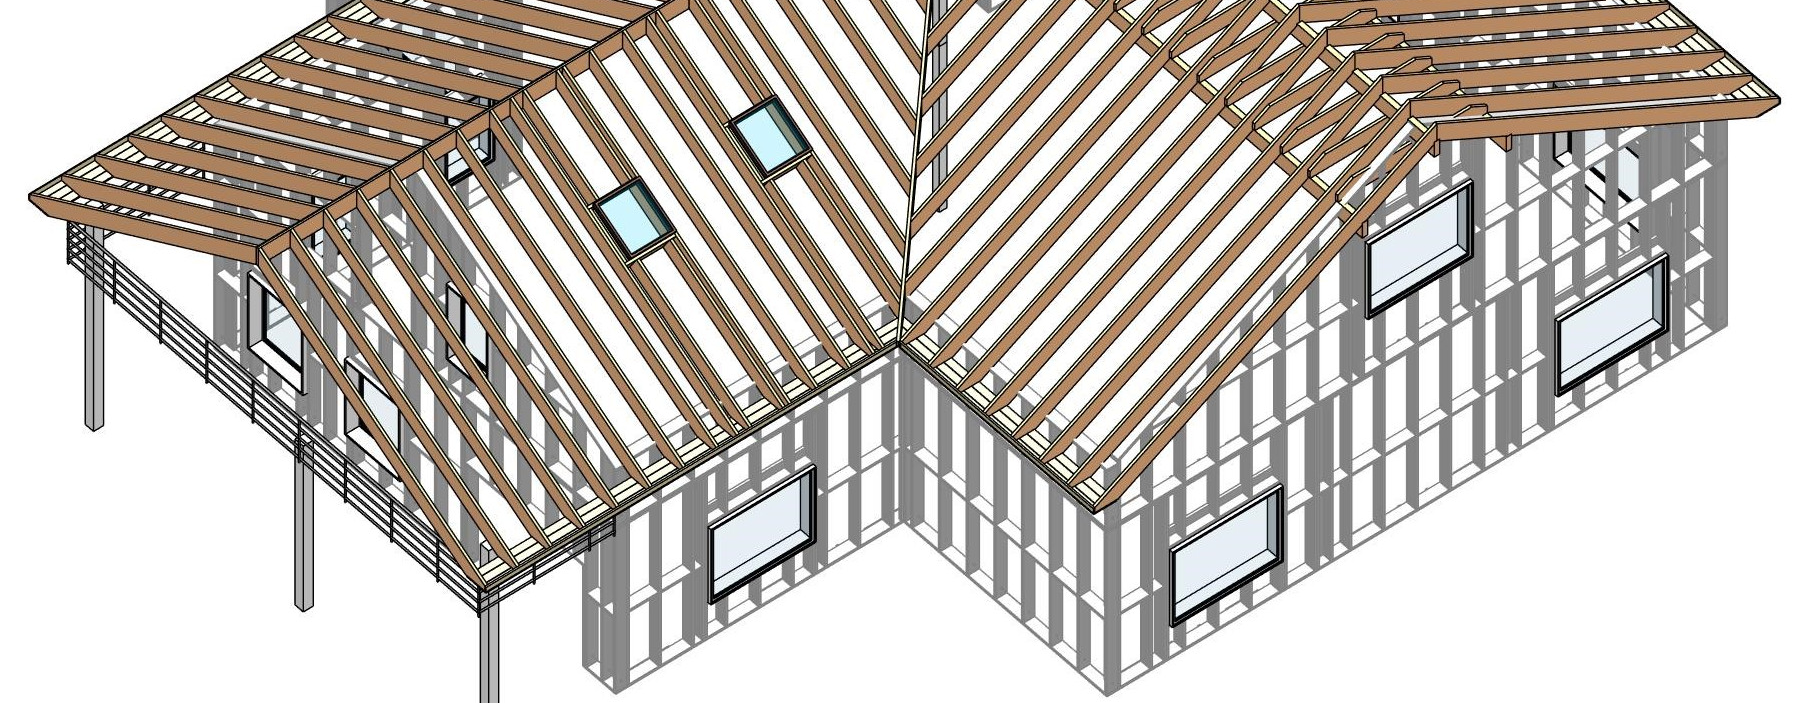 Wood Framing Wall And Wood Framing Roof For Revit 2019 Is